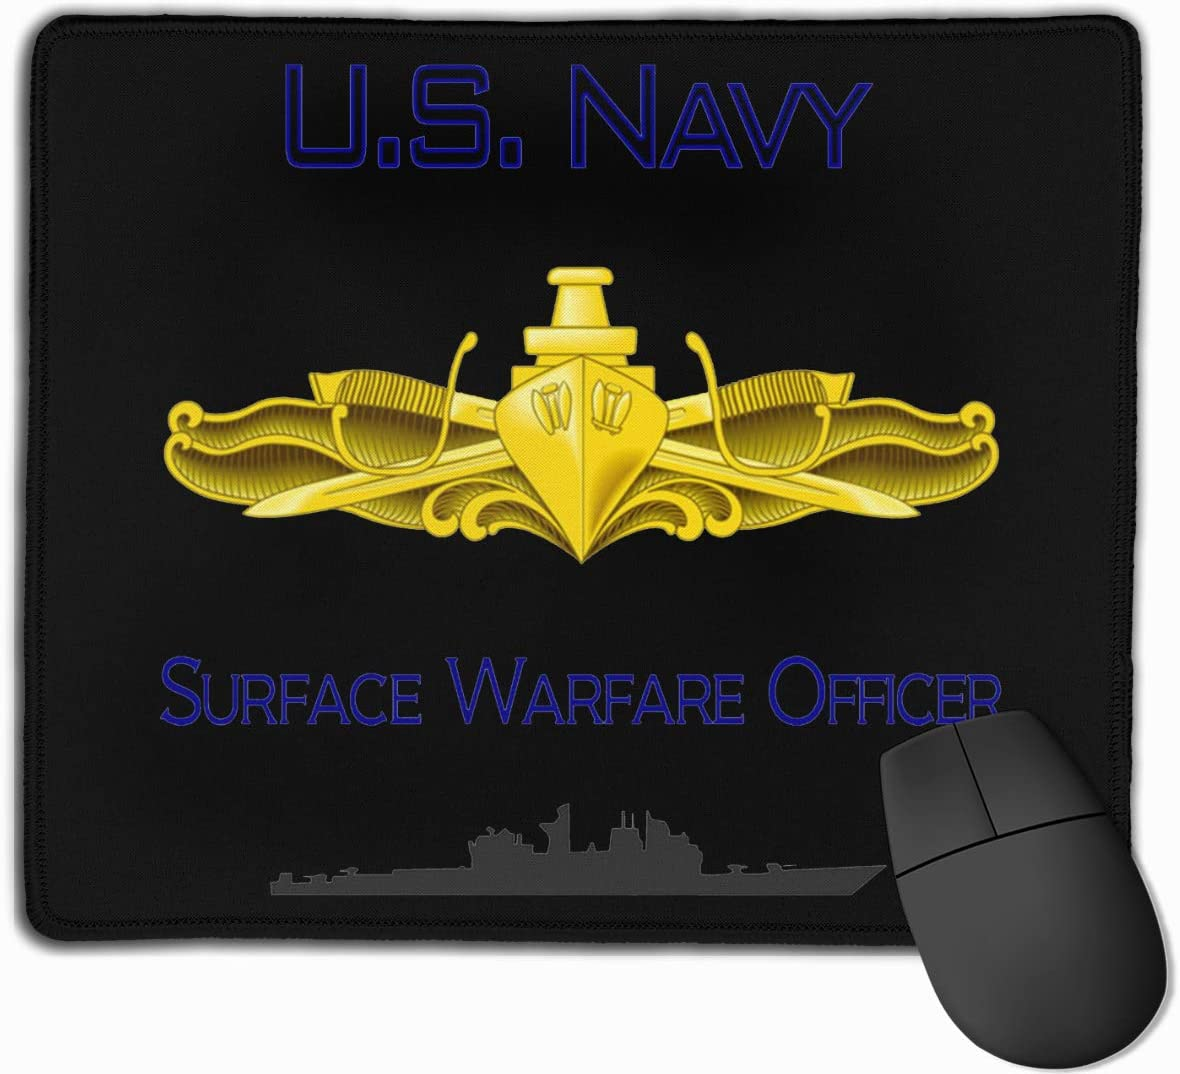 US Navy Surface Warfare Officer Mouse Pads Non-Slip Gaming Office Mouse Pad Rectangular Rubber Mouse Pad